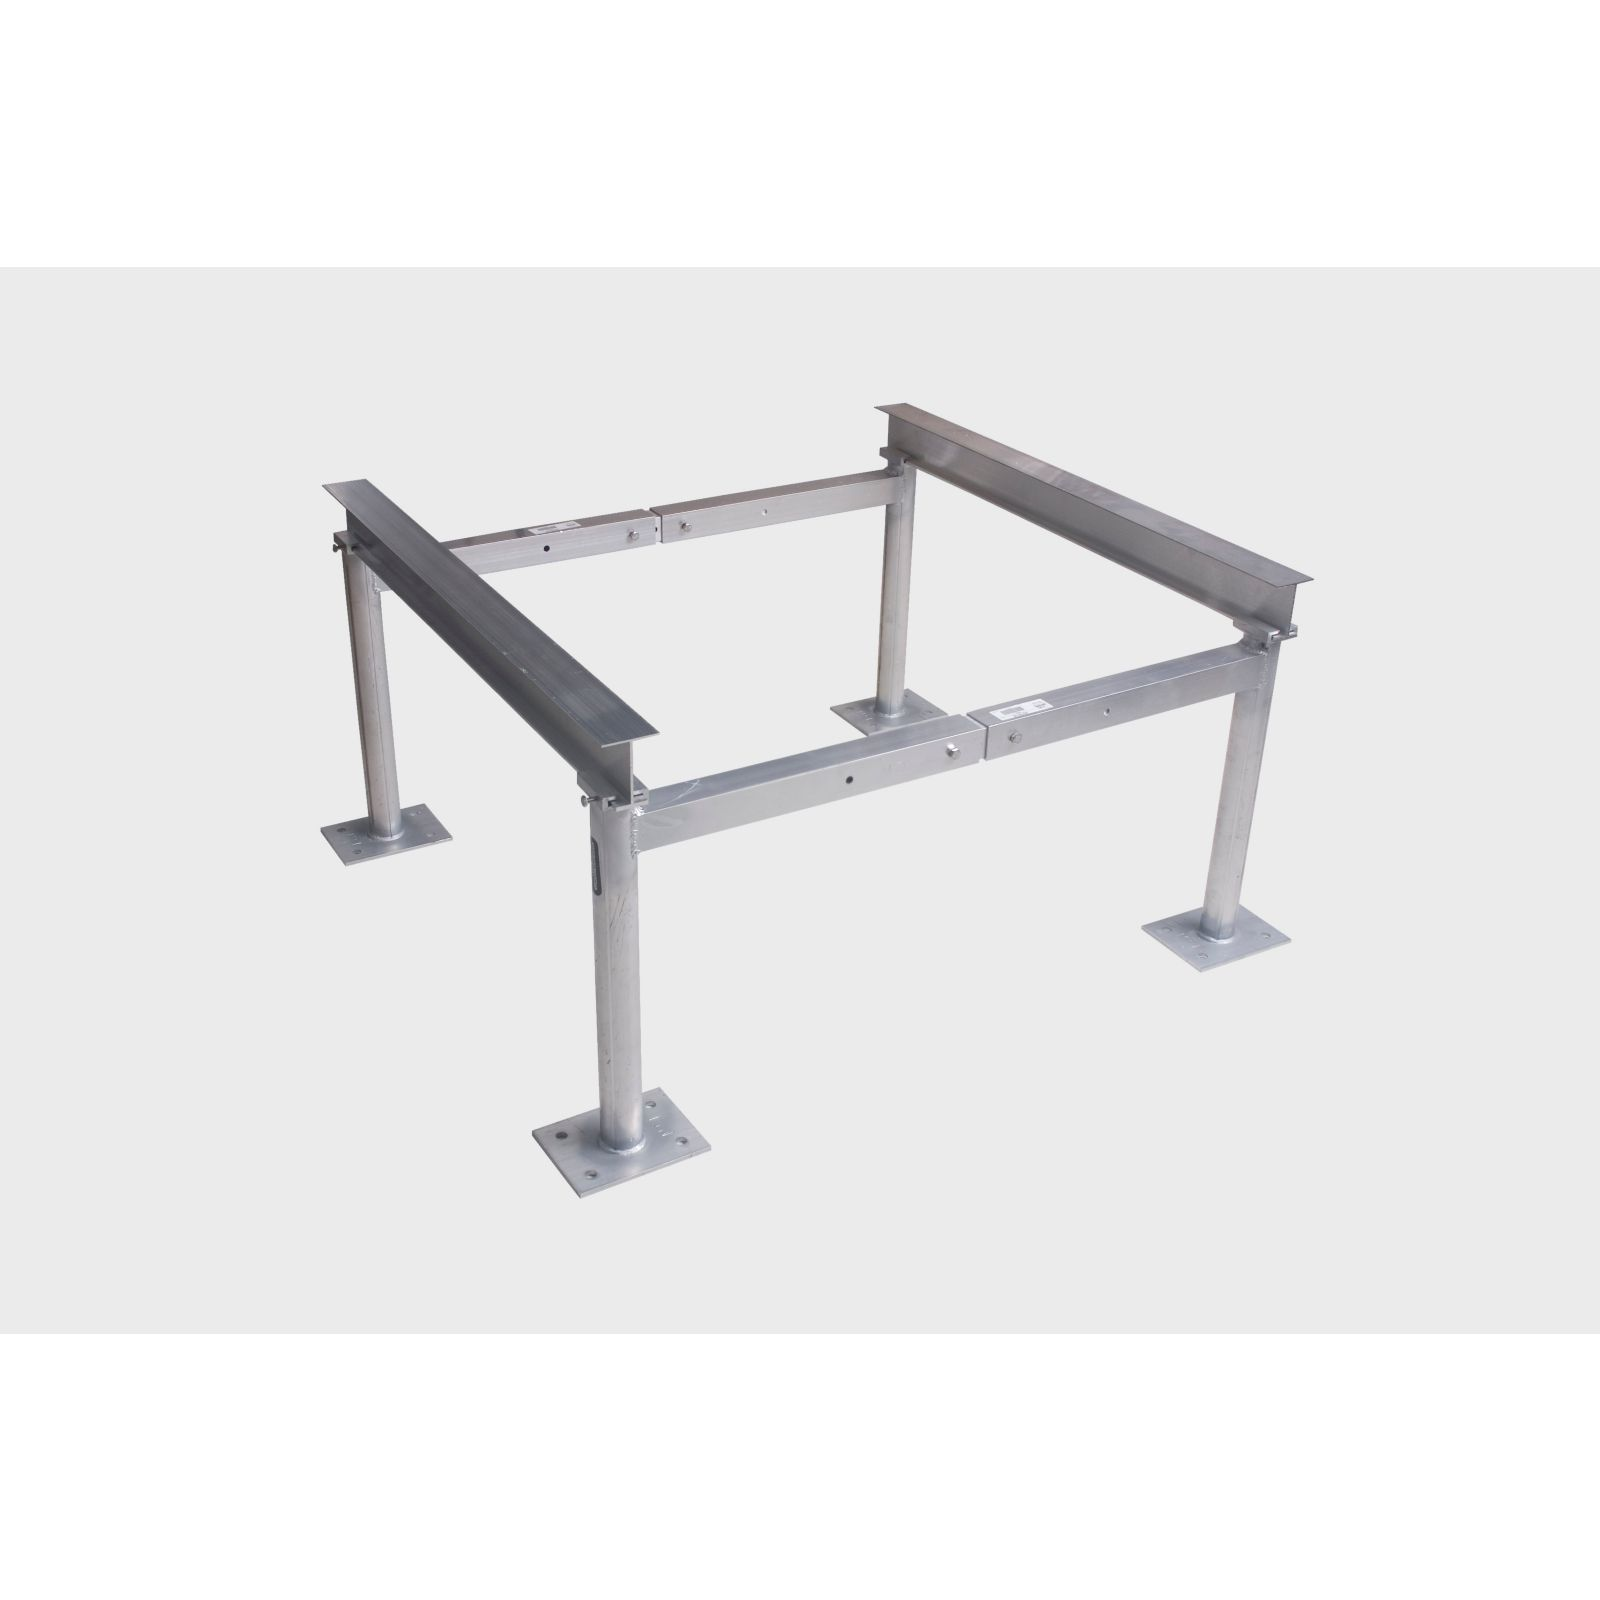 Miami Tech ASI-6 - Aluminum Condensing Unit Stand, Single I-Beam, 6'